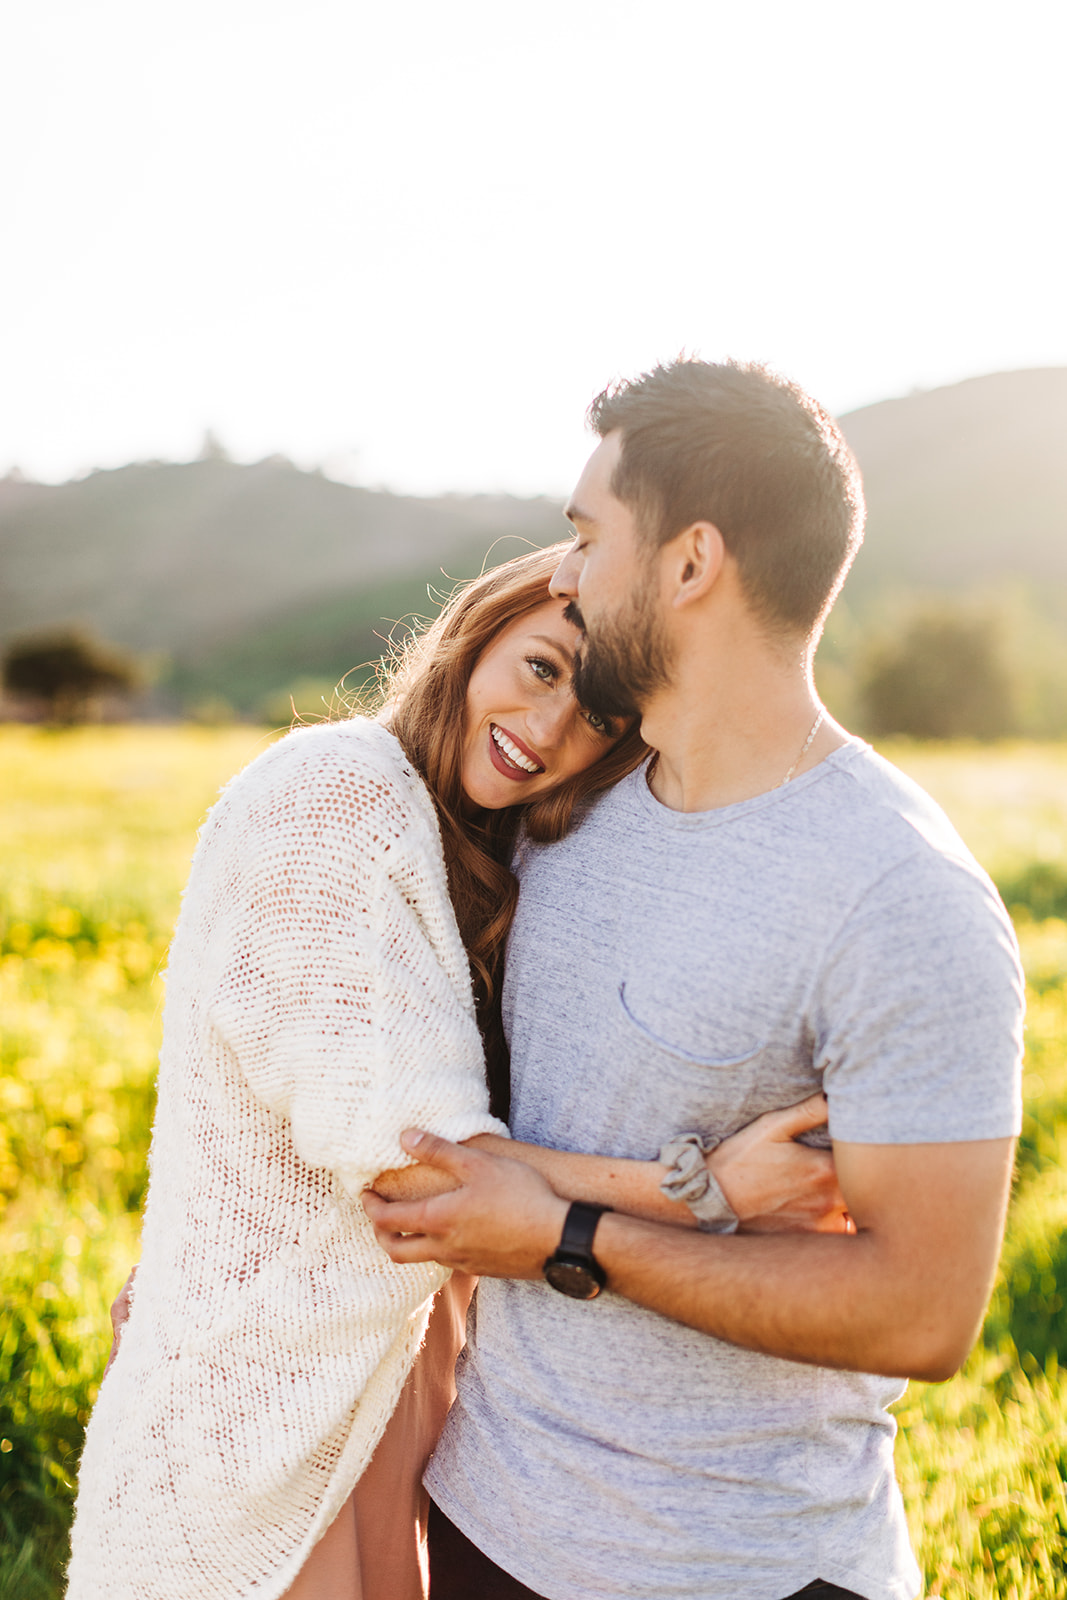 Katie-Yovin_Richard_Superbloom-Engagement-Photos_Clarisse-Rae_Southern-California-Wedding-Photographer-Orange-County-Engagement-Photos-26